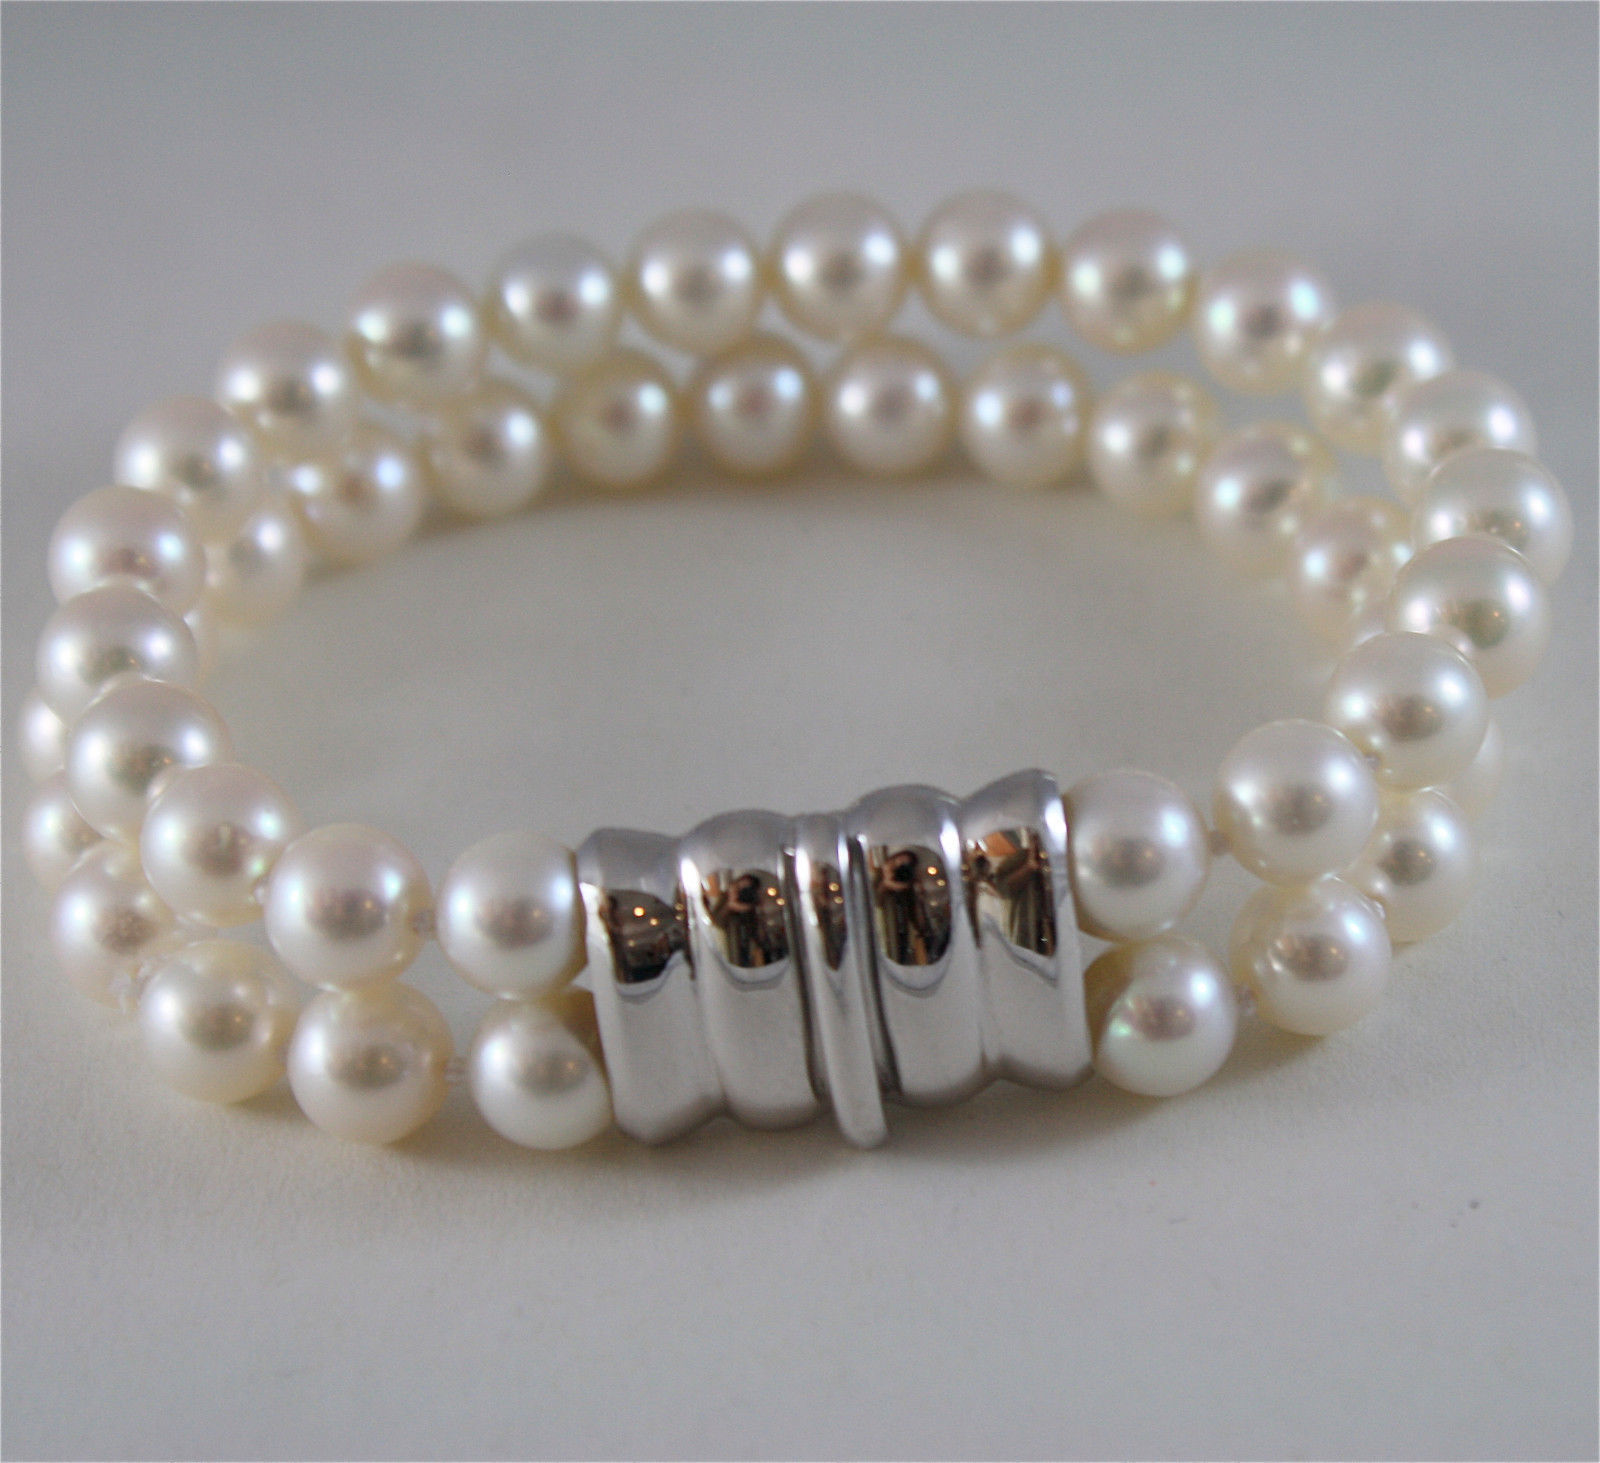 18K WHITE GOLD BRACELET WITH TWO STRANDS OF WHITE FW PEARLS 7.5 IN MADE IN ITALY